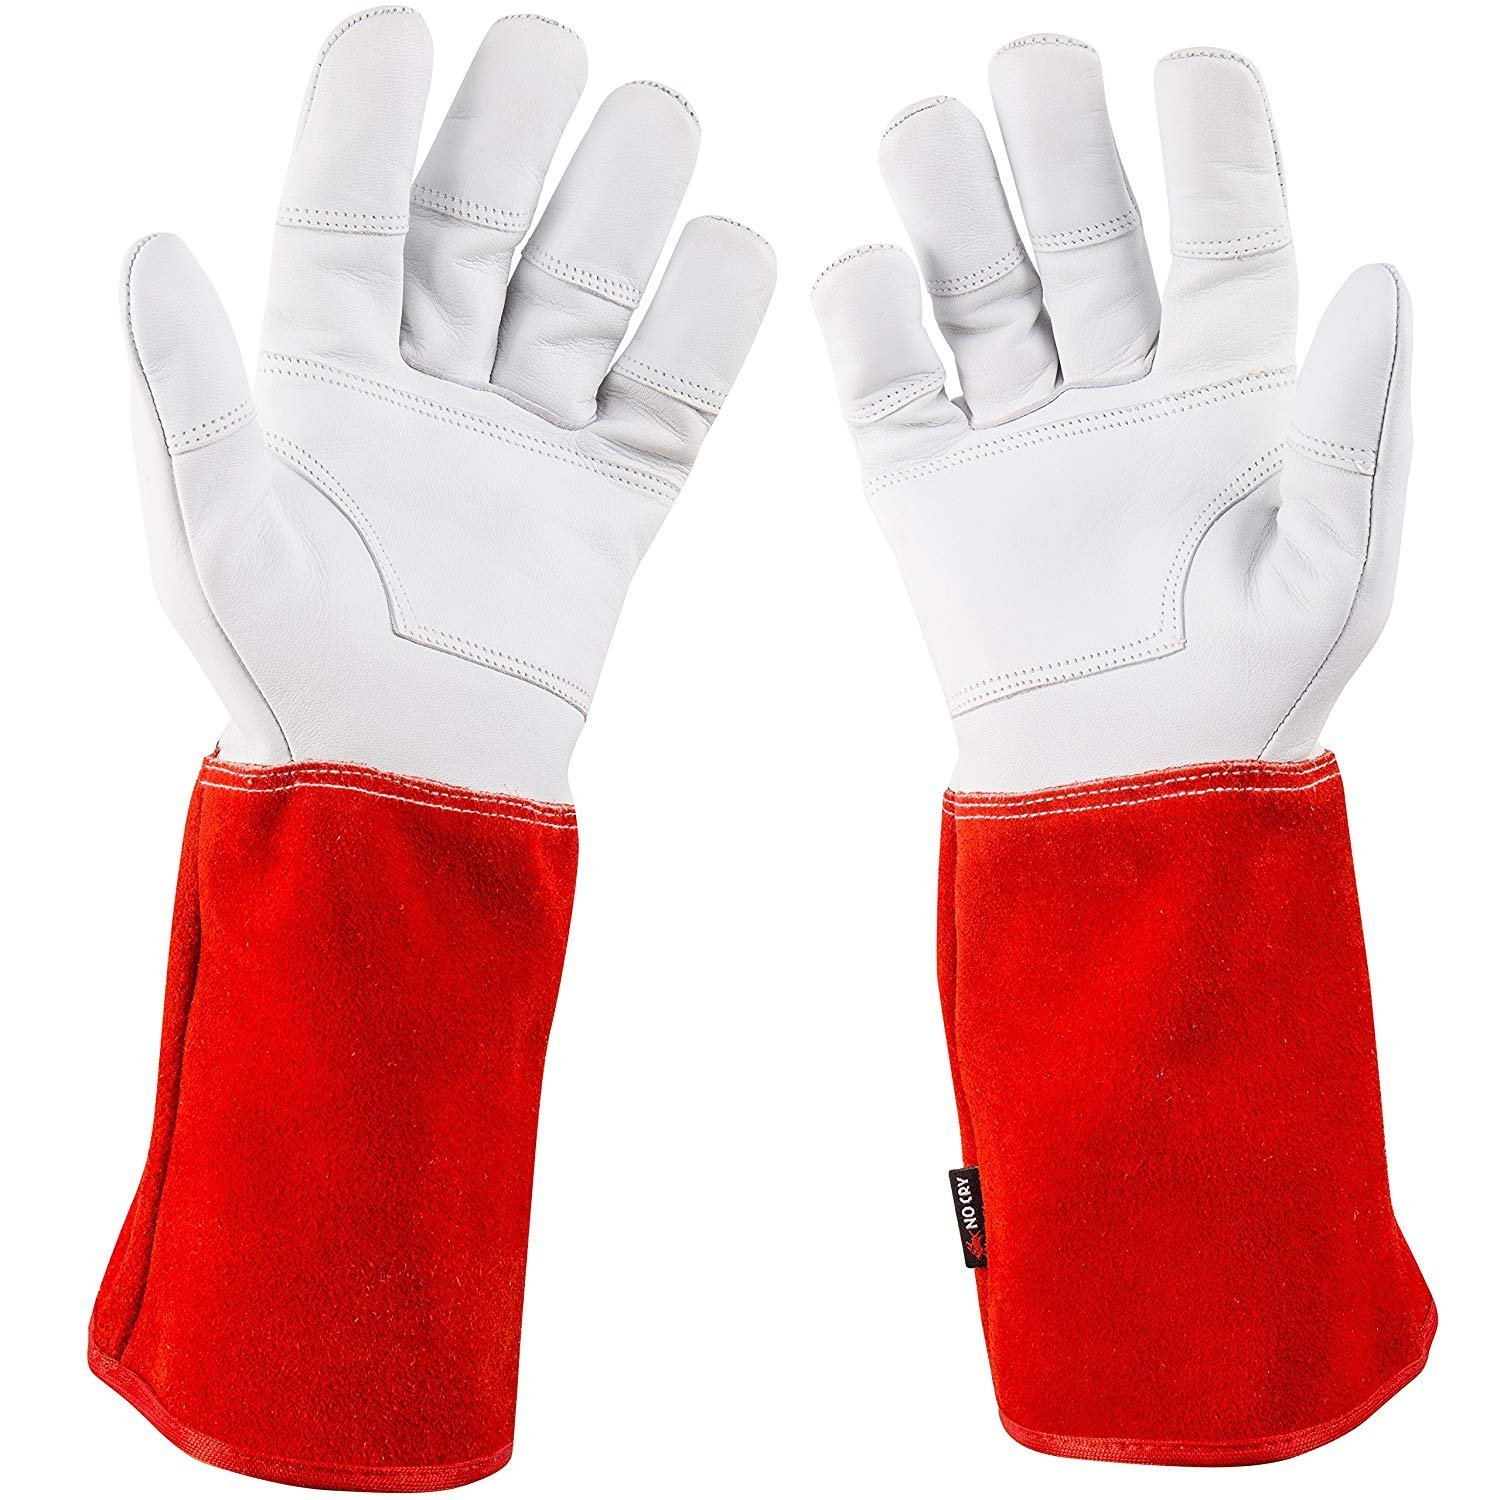 Puncture Resistant with Extra Long Forearm Protection and Reinforced Palms and Fingertips NoCry Rose Pruning Gloves Size Small